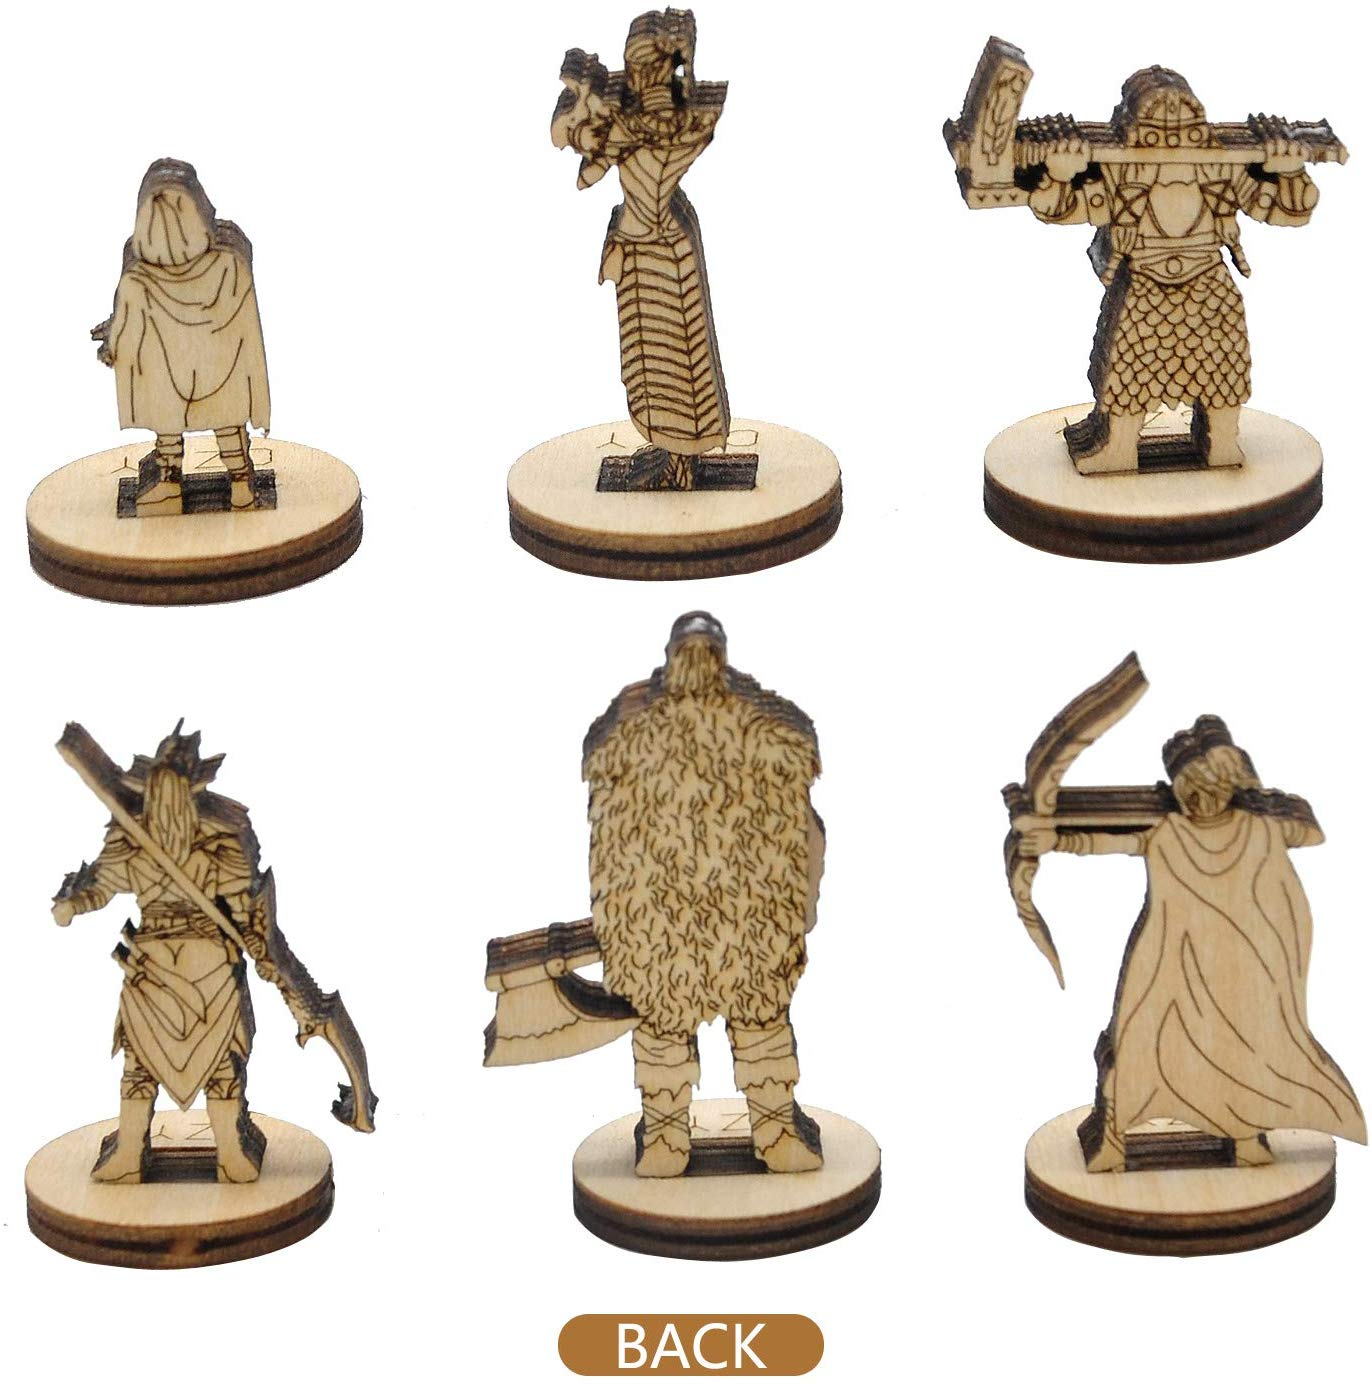 D&D Fantasy Miniatures 2.5D Wood Laser Cut Figures 28mm Scale 6PCS Starter Set Perfect for Dungeons and Dragons, Pathfinder and Other Tabletop RPG